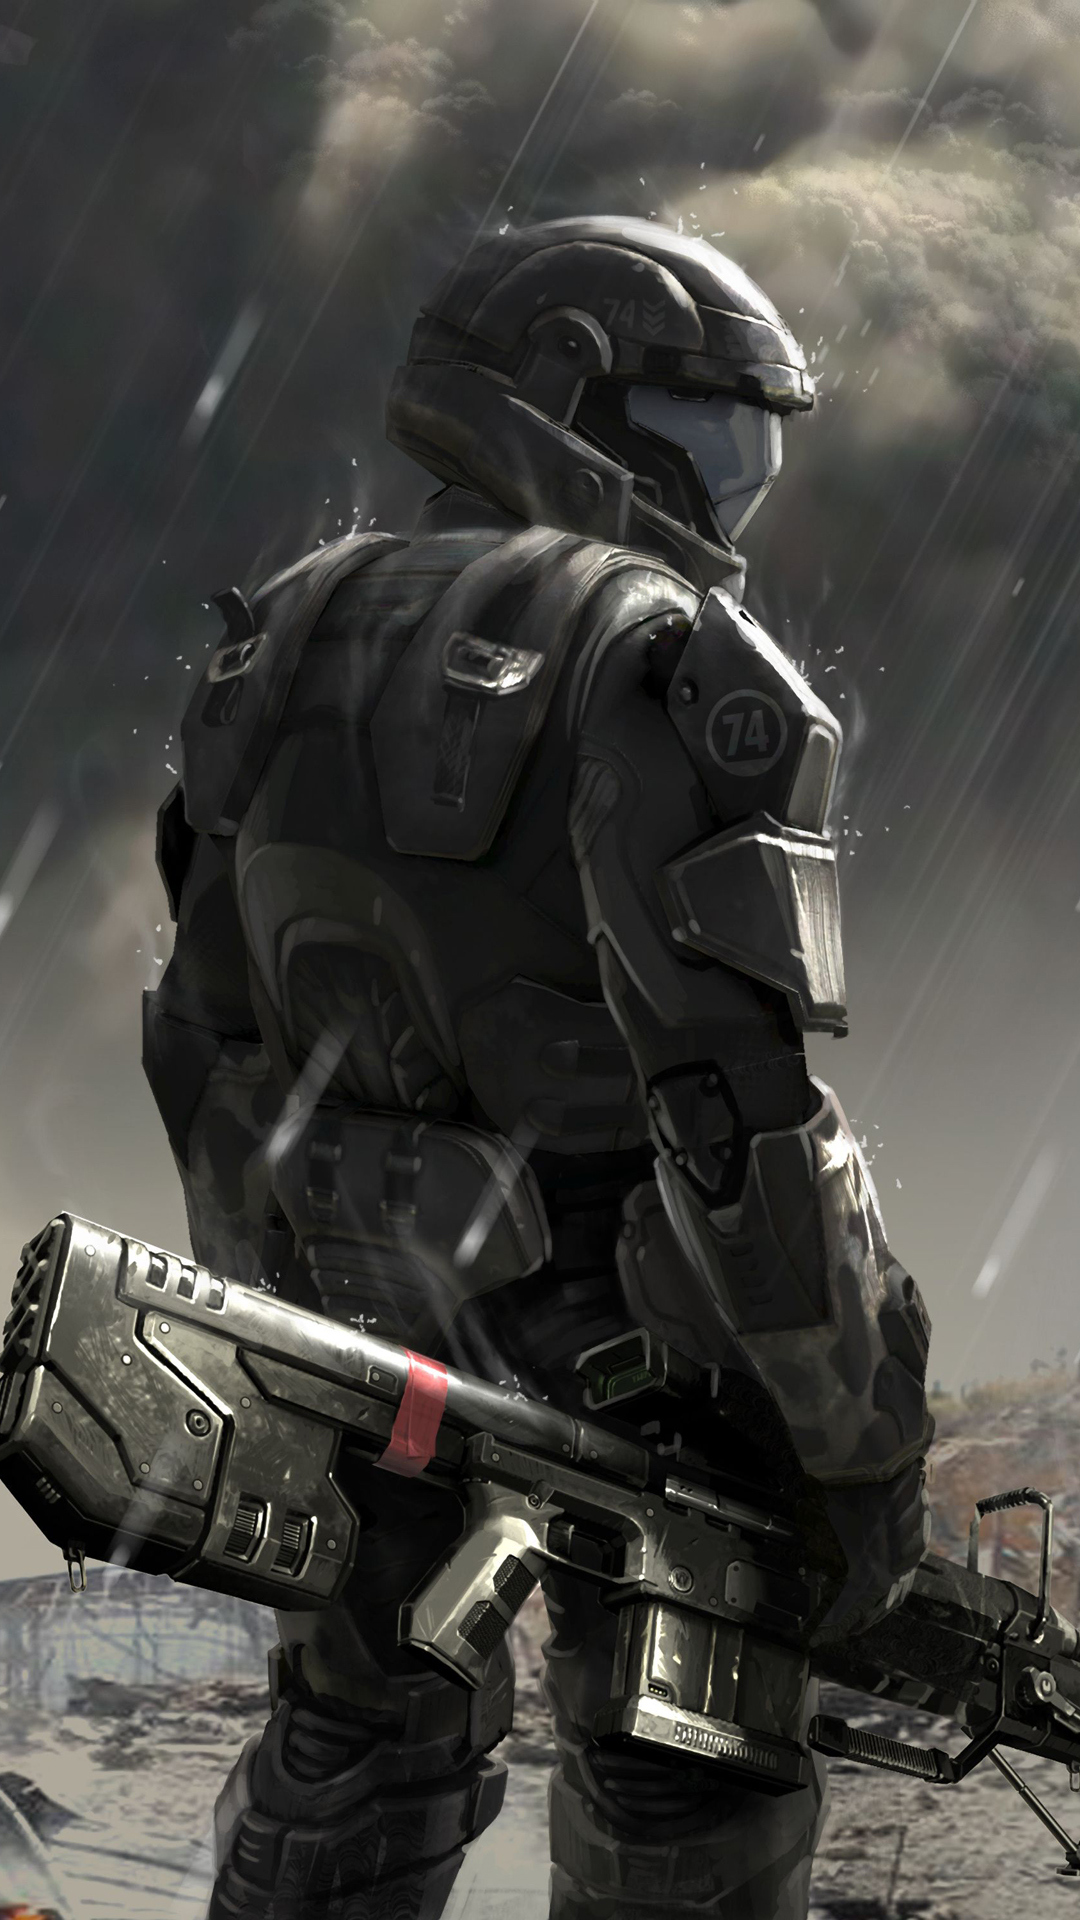 Clear Wallpaper Iphone X Soldier Concept Halo 4 Best Htc One Wallpapers